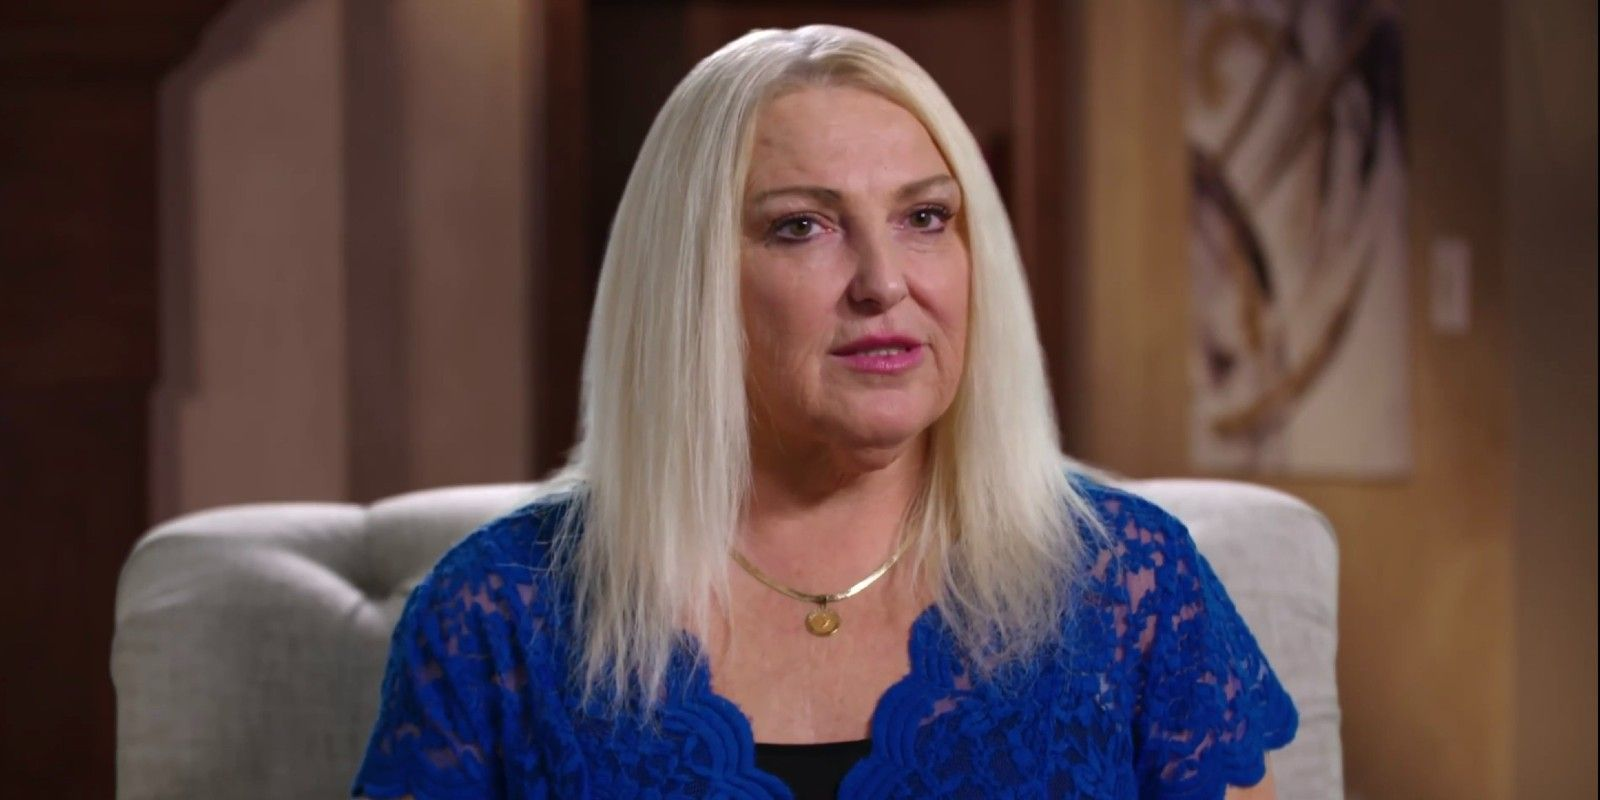 90 Day Fiance: Fed-Up Fans Want Angela Deem Canceled & Removed From Show